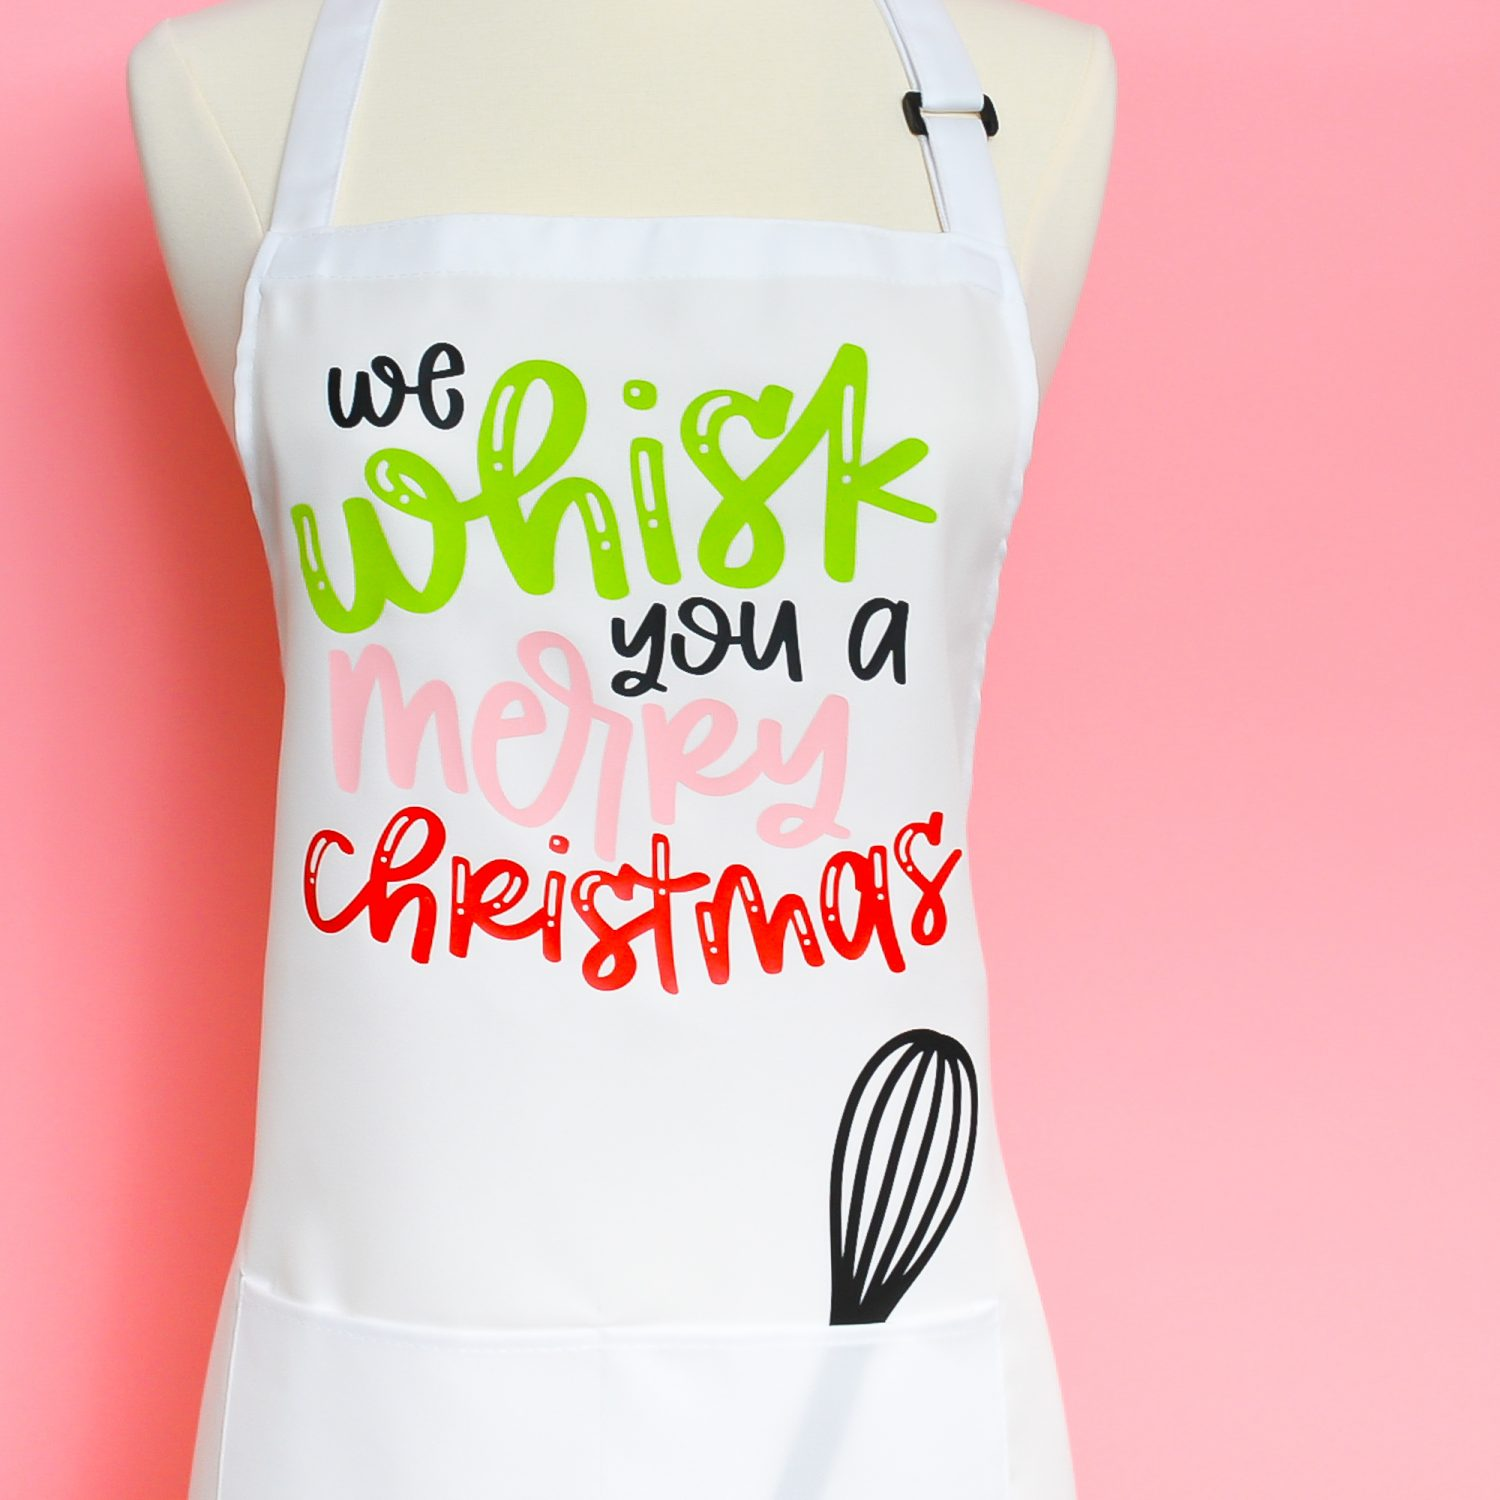 """White apron with """"We Whisk You a Merry Christmas"""" on pink background."""